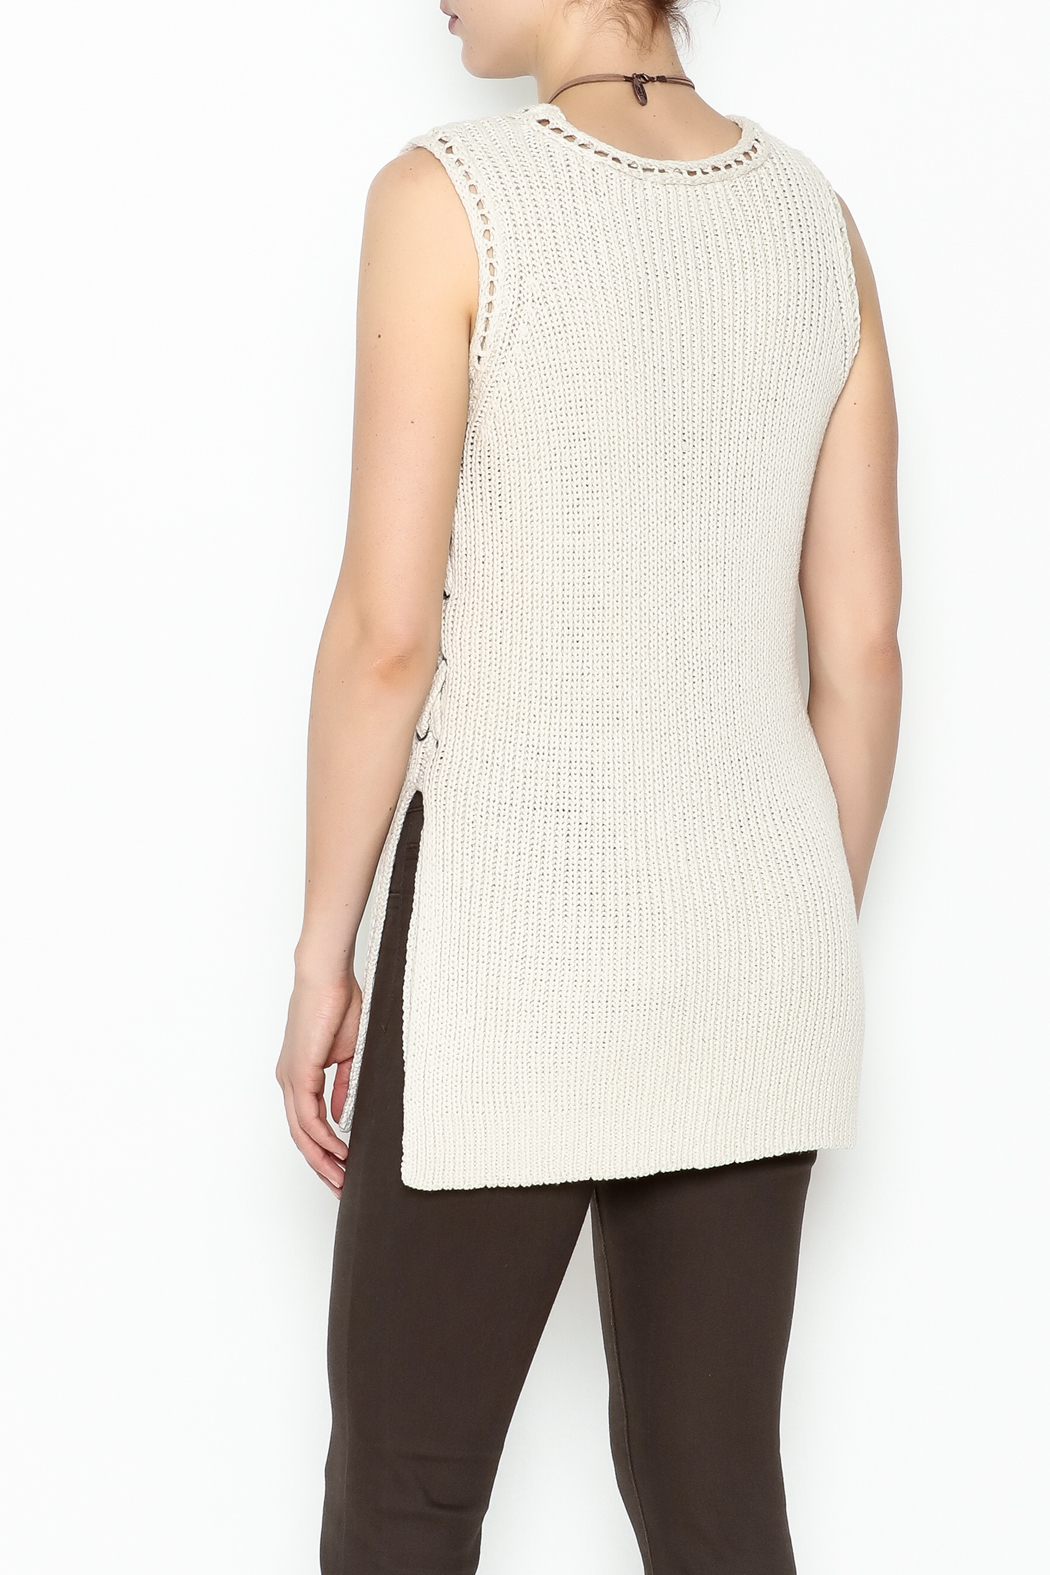 Cupcakes and Cashmere Paxton Sleeveless Sweater - Back Cropped Image